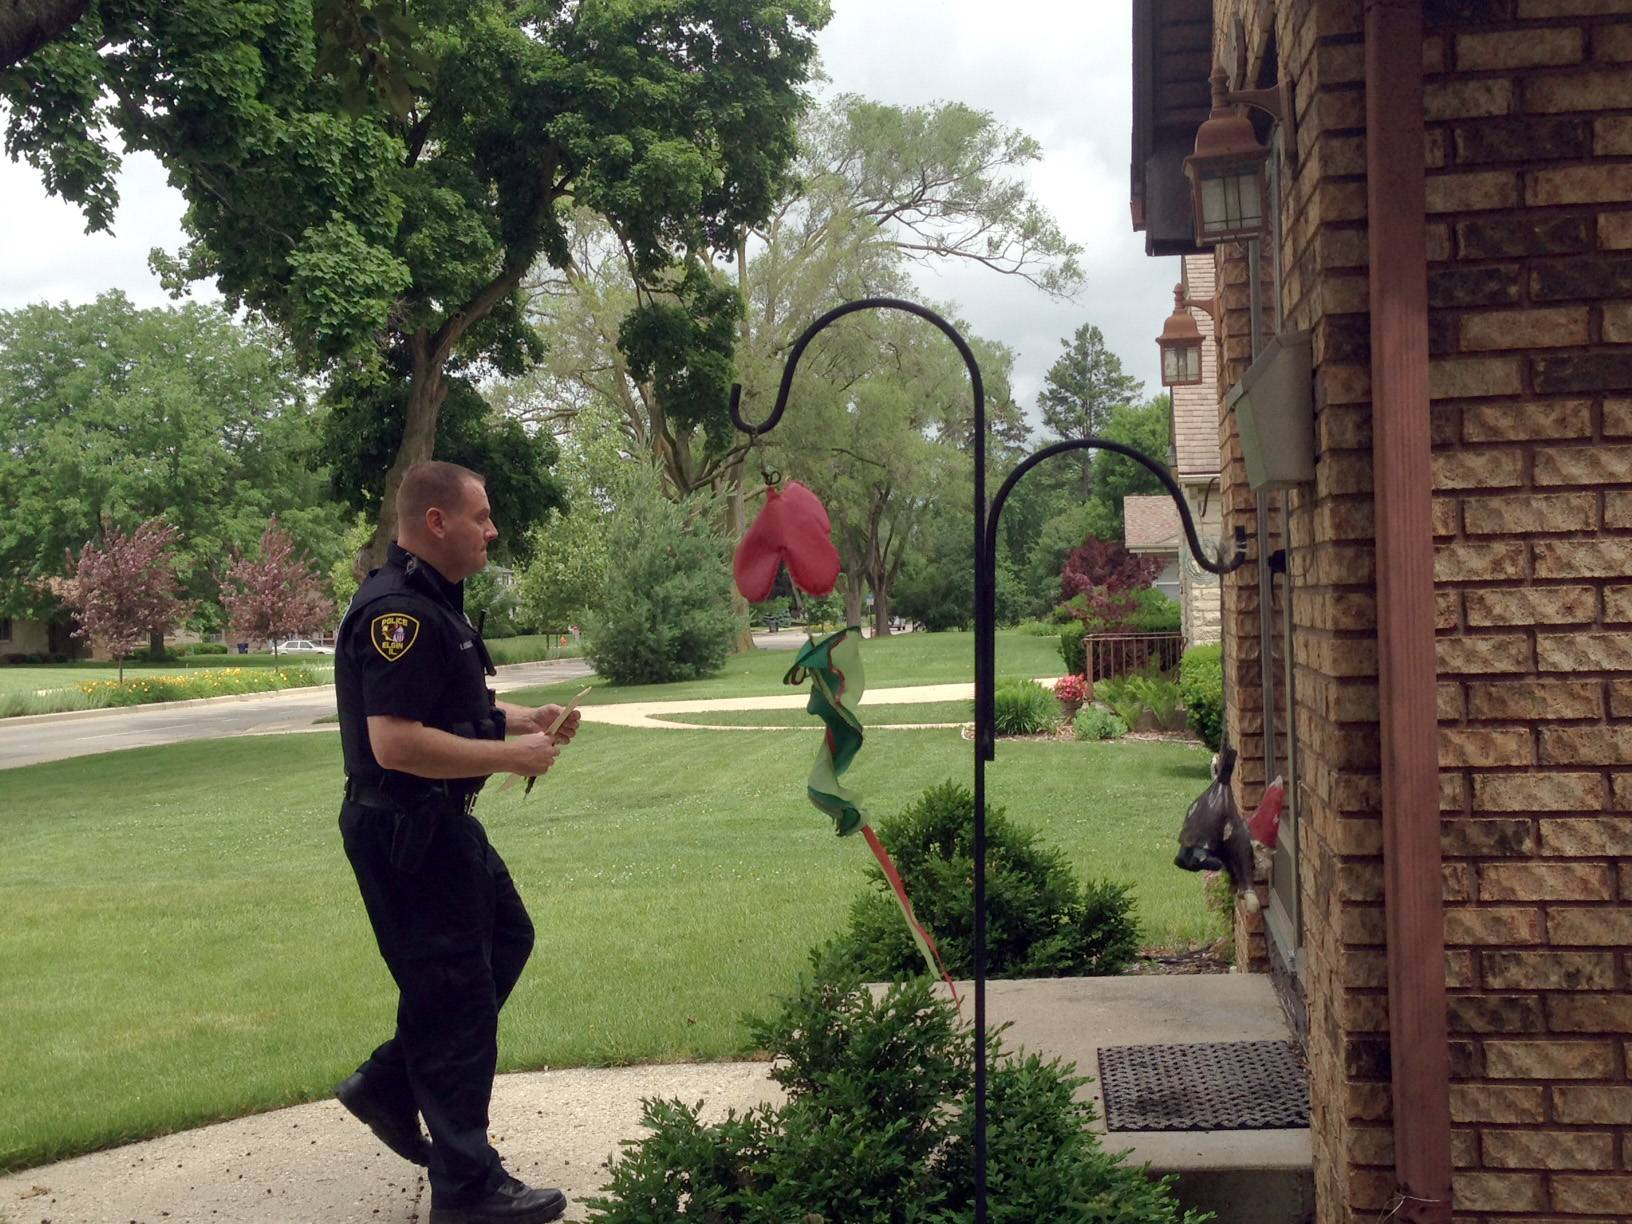 Elgin police officer Rob Engelke visited the home of a registered sex offender last month as part of the department's routine checks. Engelke is a member of the resident officer program.